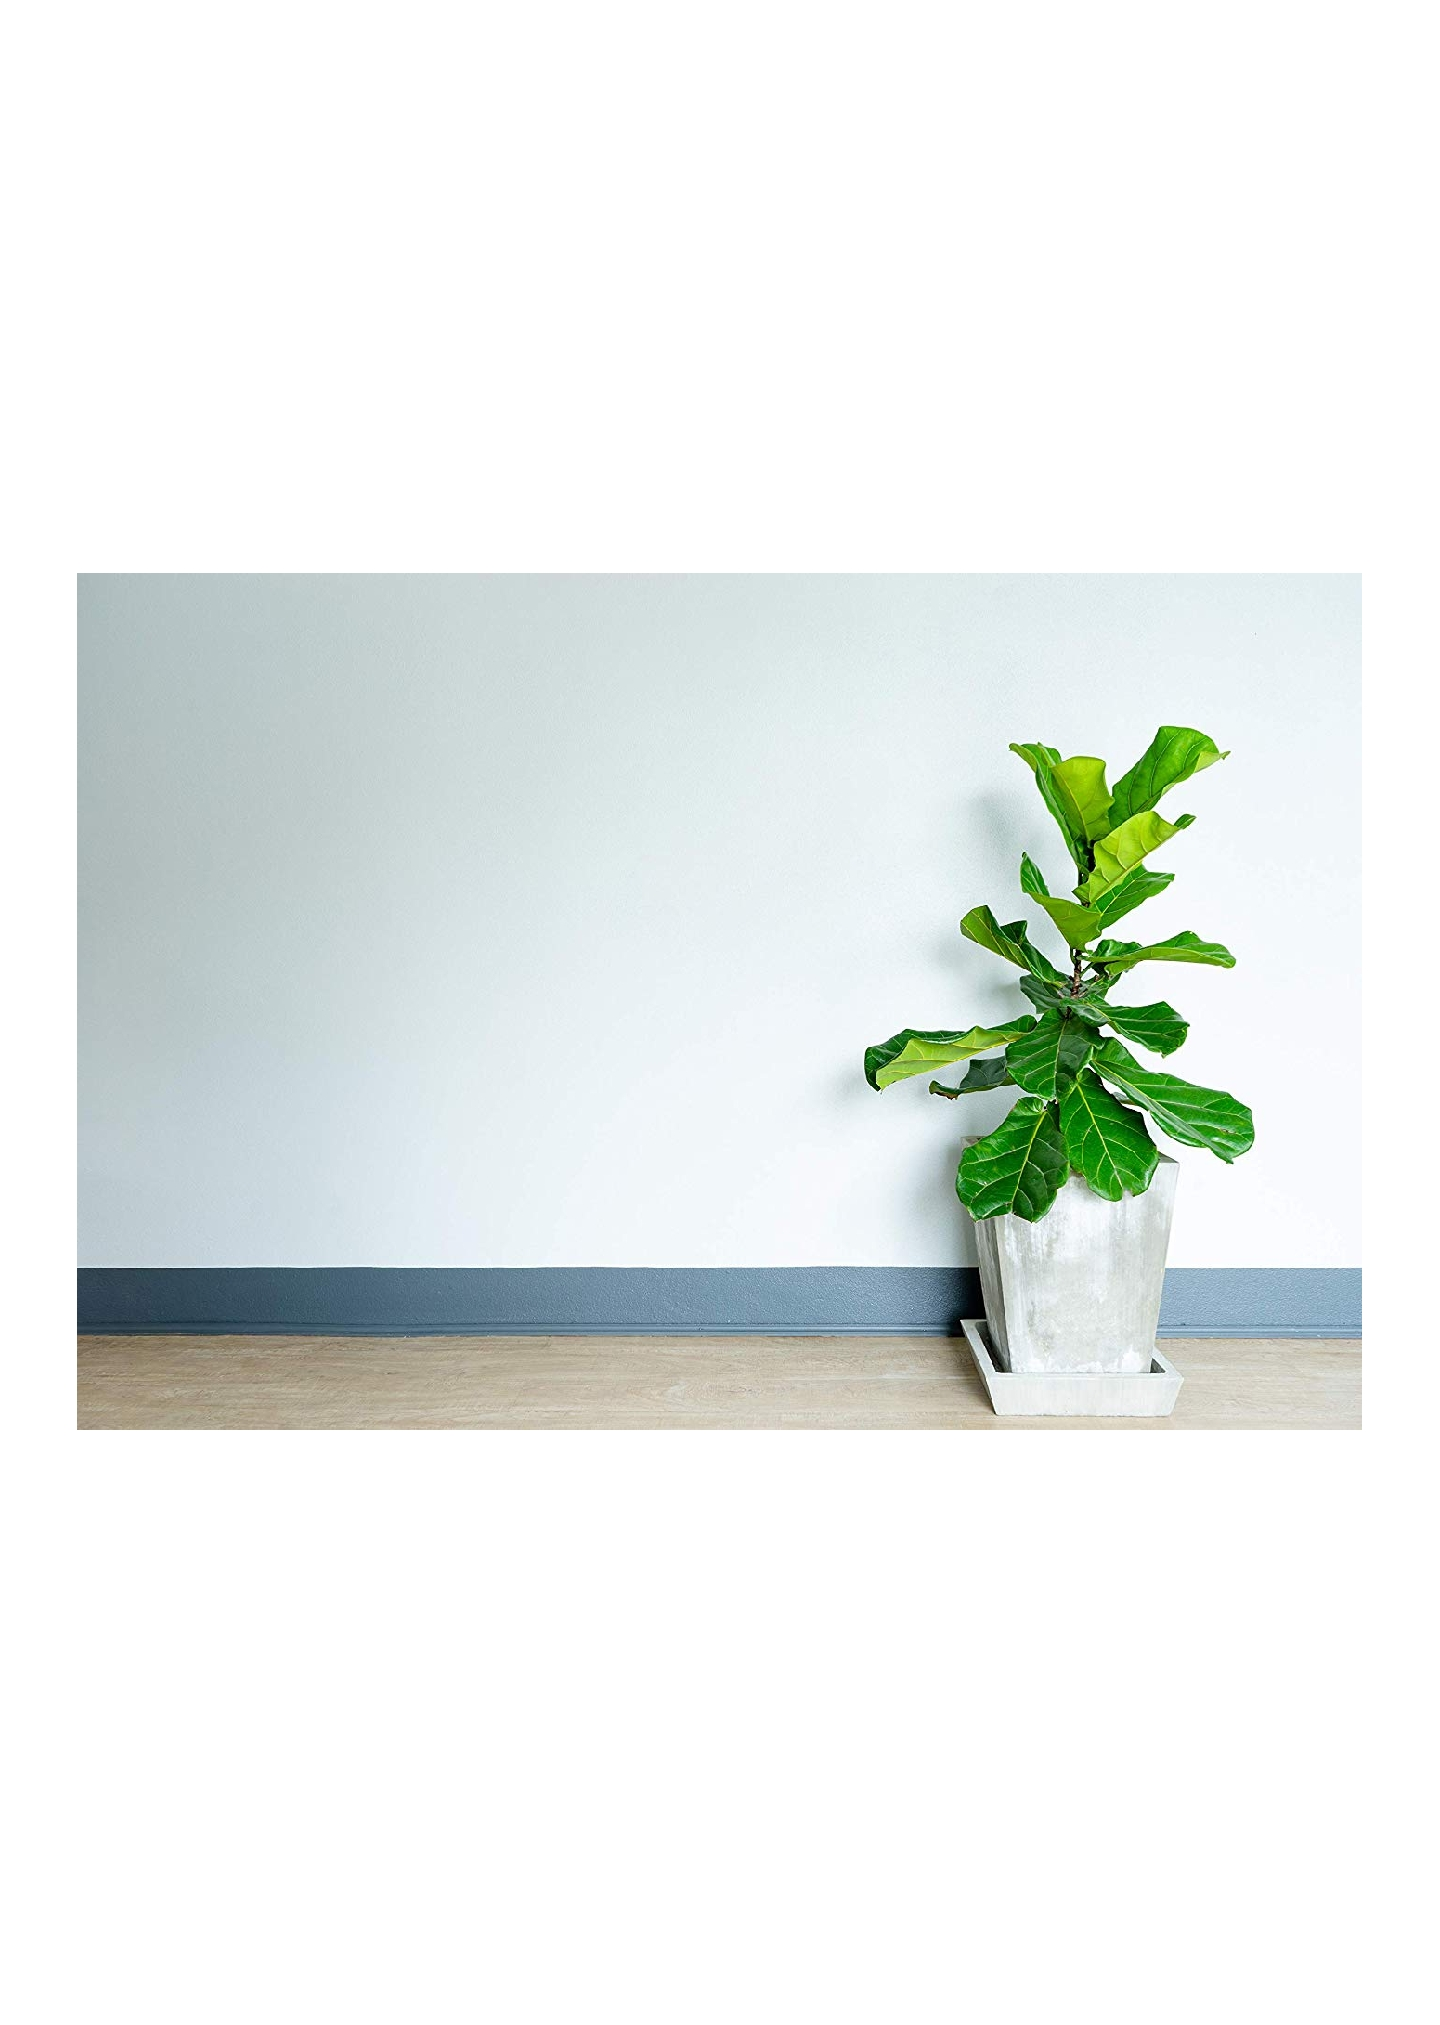 FIDDLE LEAF FIG TREES - SHOP FIDDLE LEAF FIG TREE ACCESSORIES